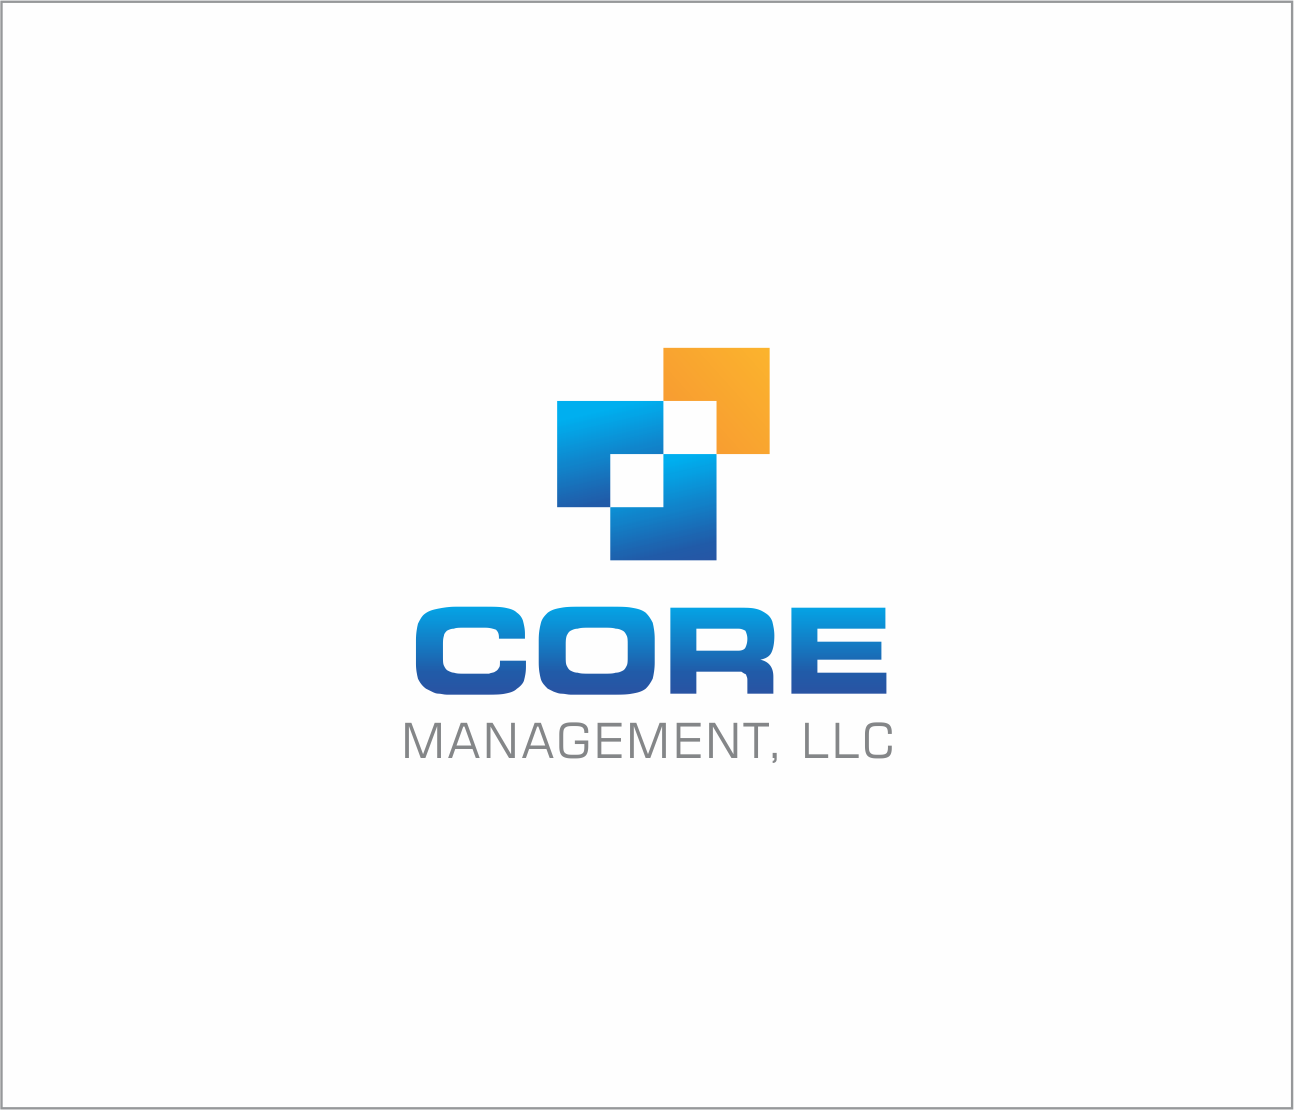 Logo Design by Armada Jamaluddin - Entry No. 203 in the Logo Design Contest Creative Logo Design for CORE Management, LLC.